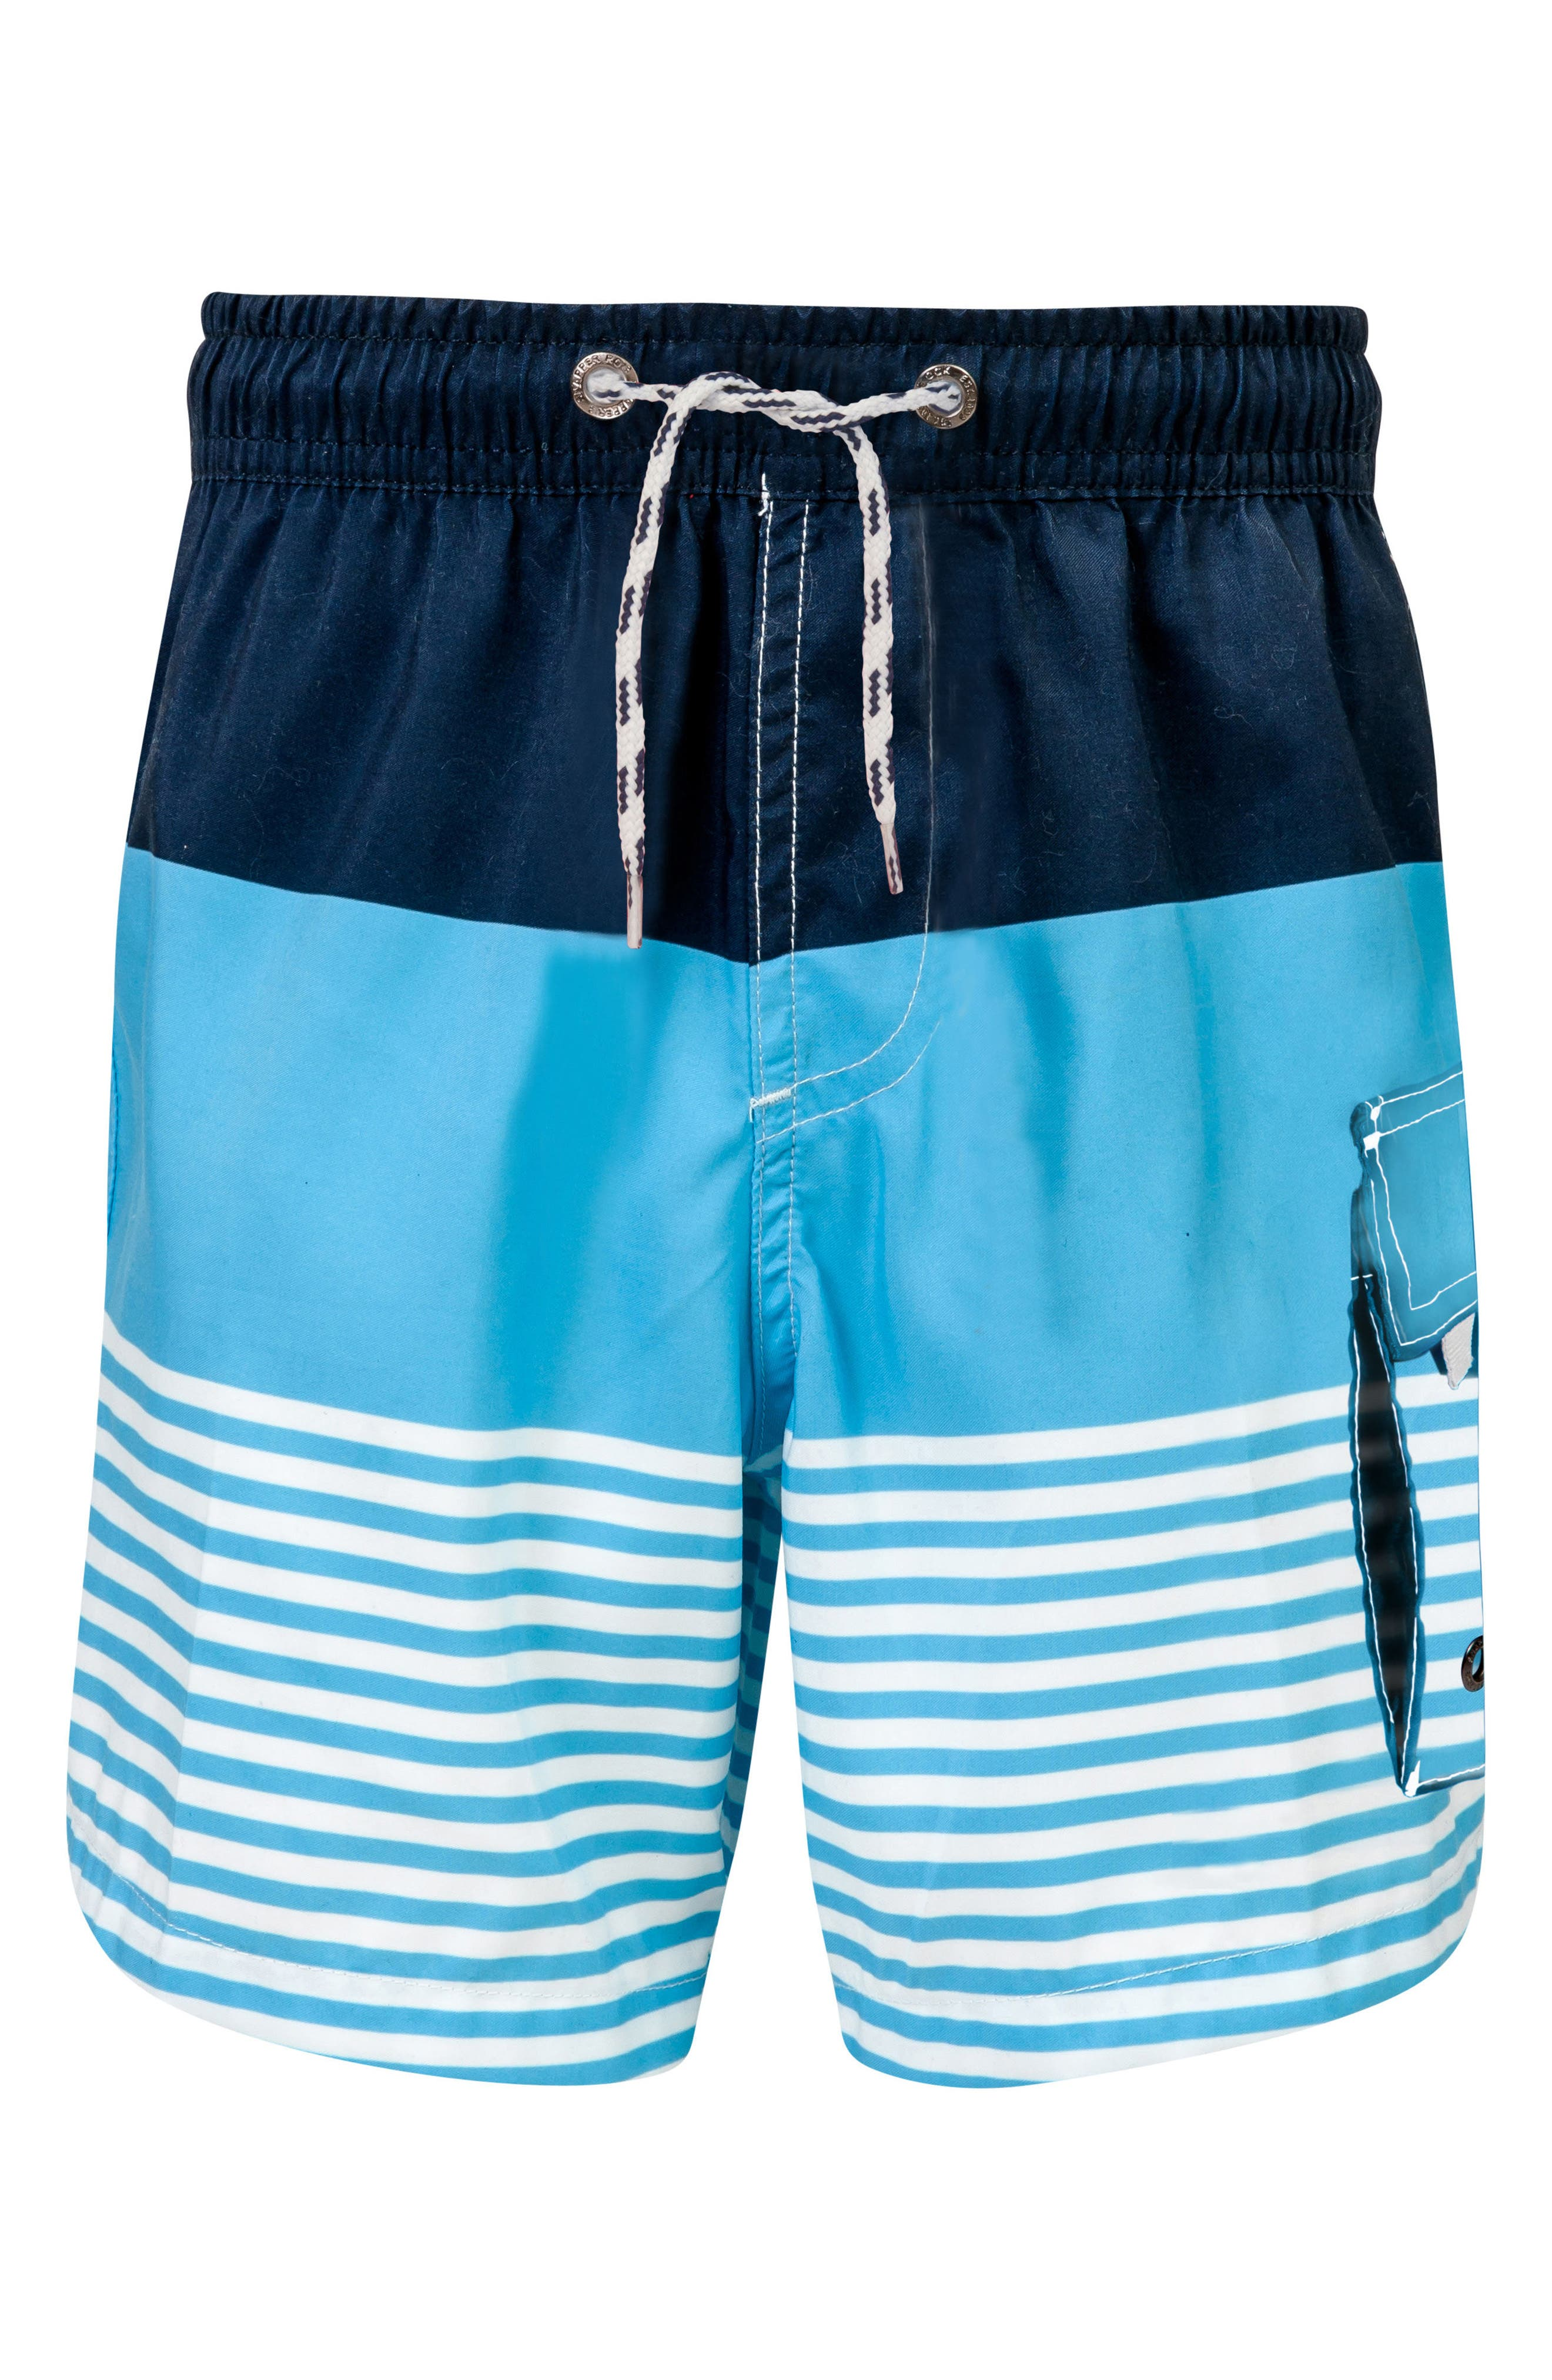 Stripe Board Shorts,                         Main,                         color, Navy/ Light Blue/ White